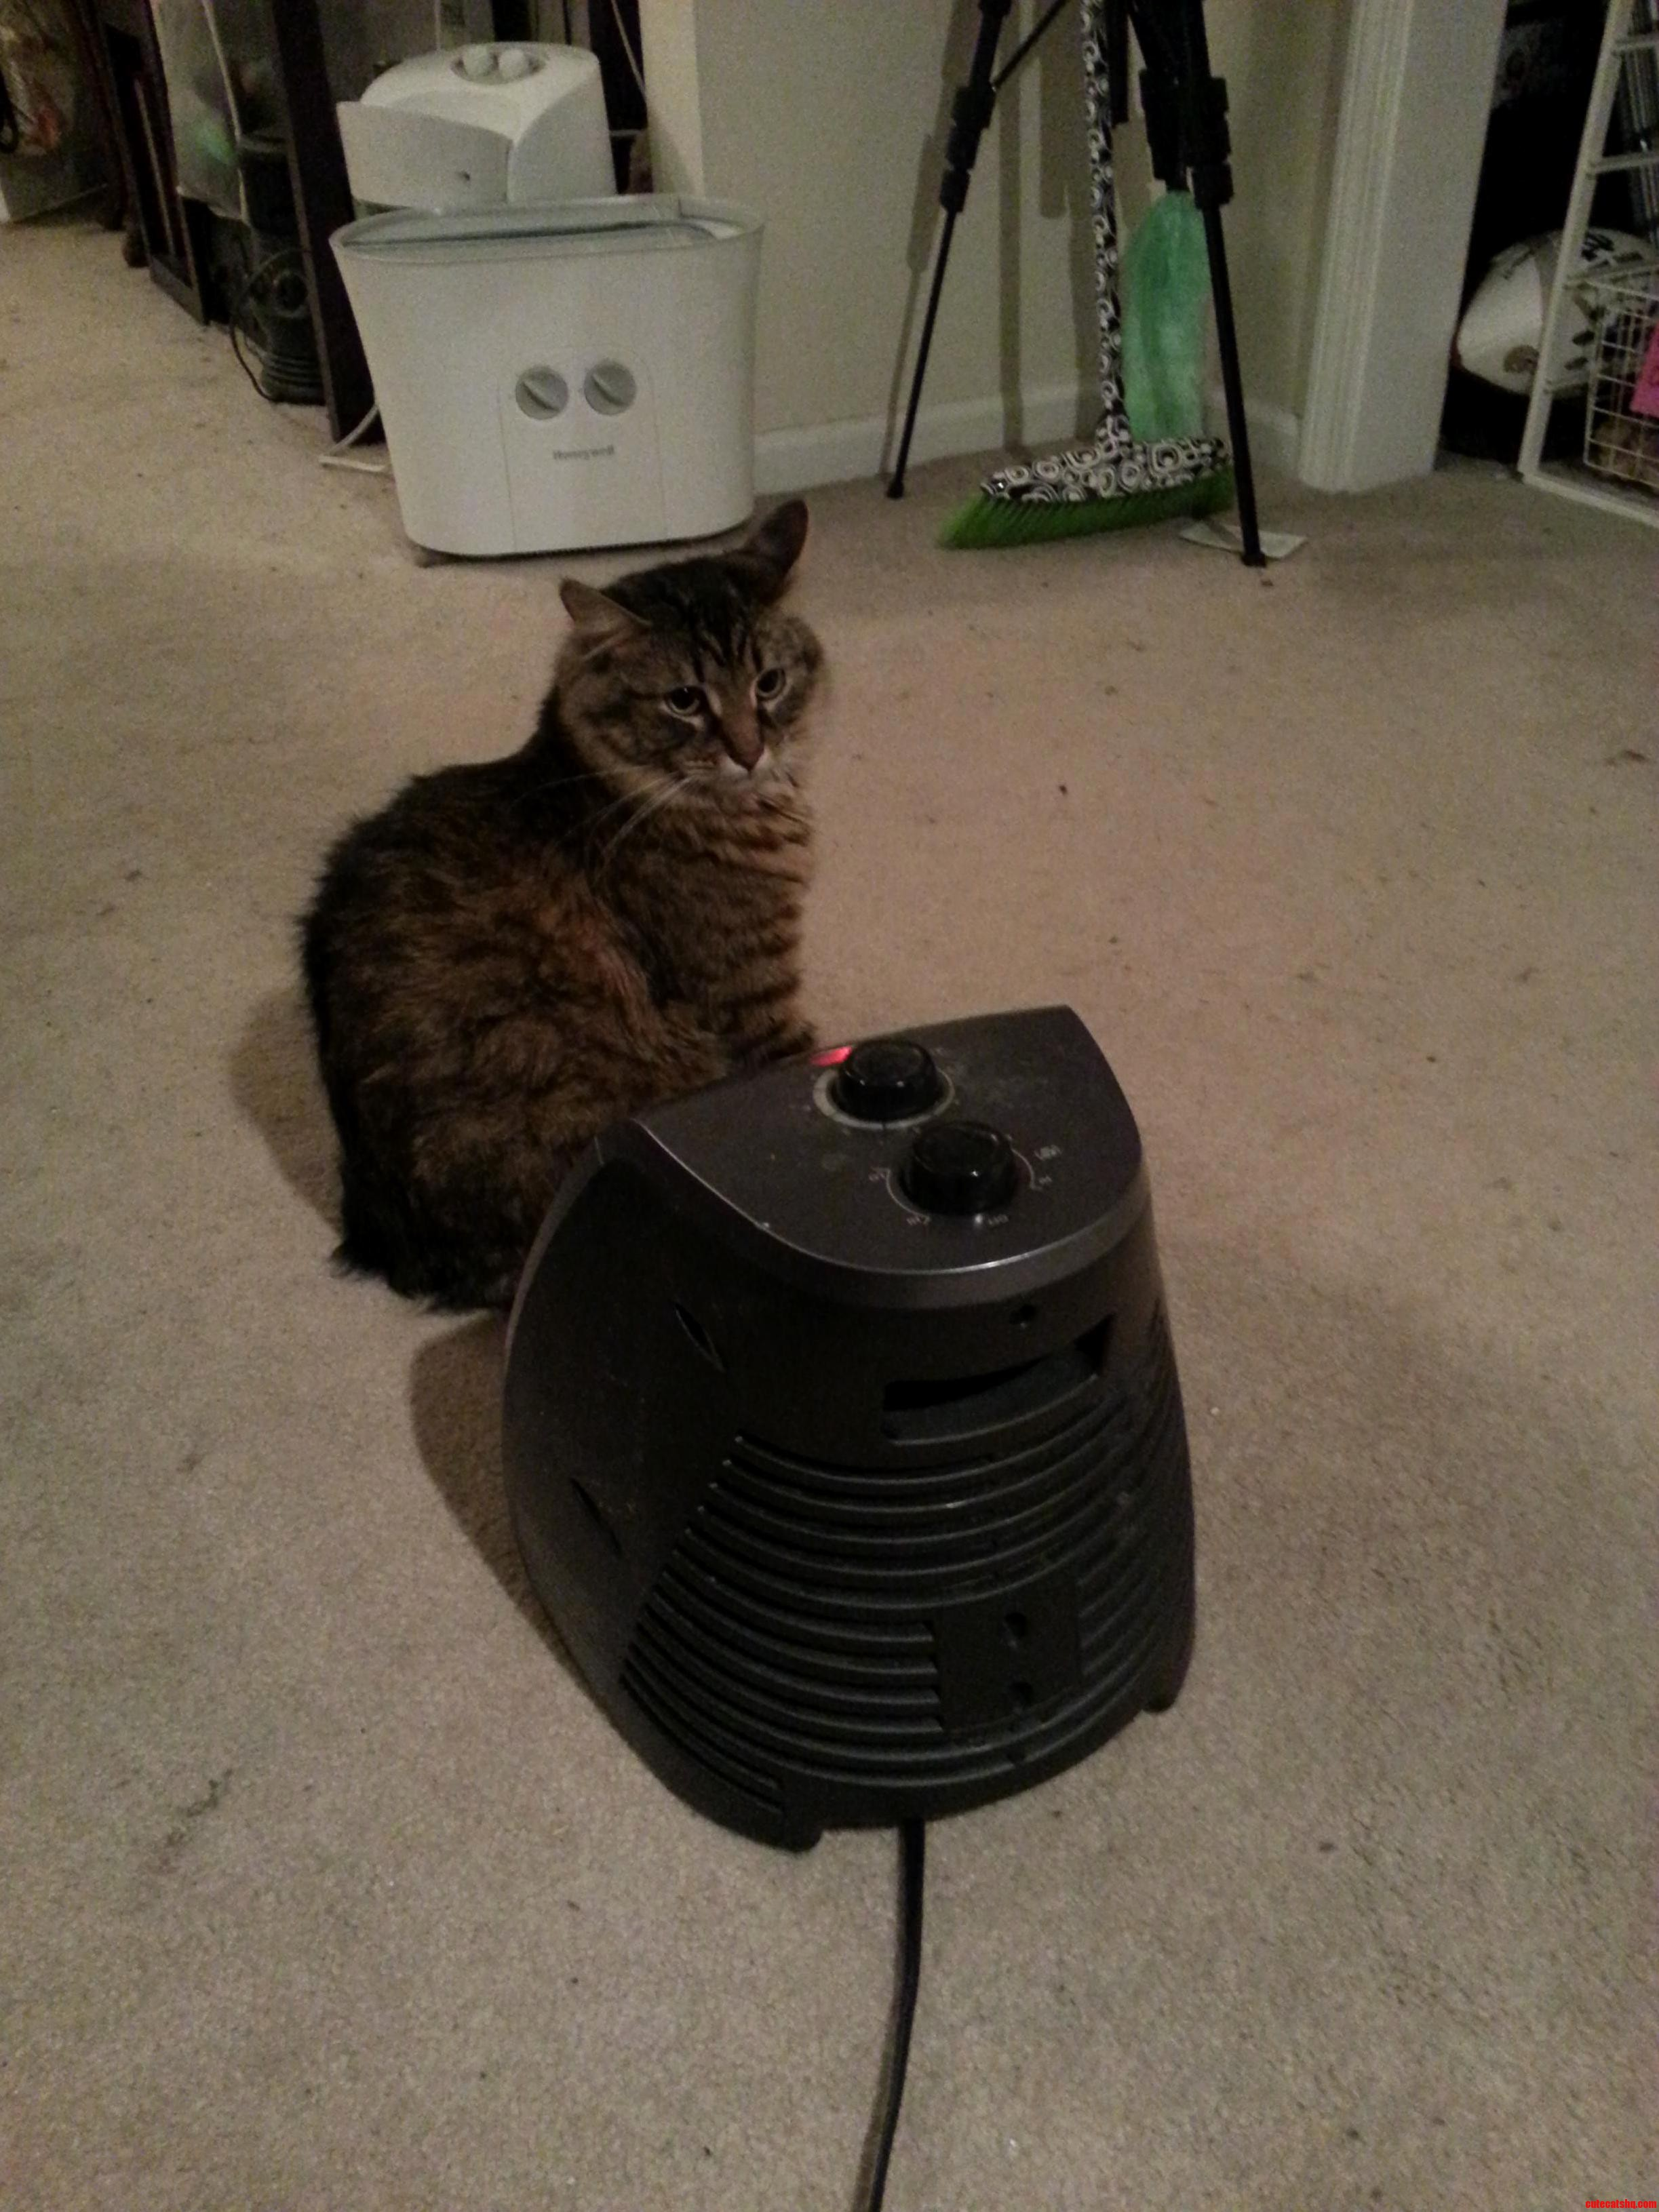 Cat And Space Heater Best Friends.